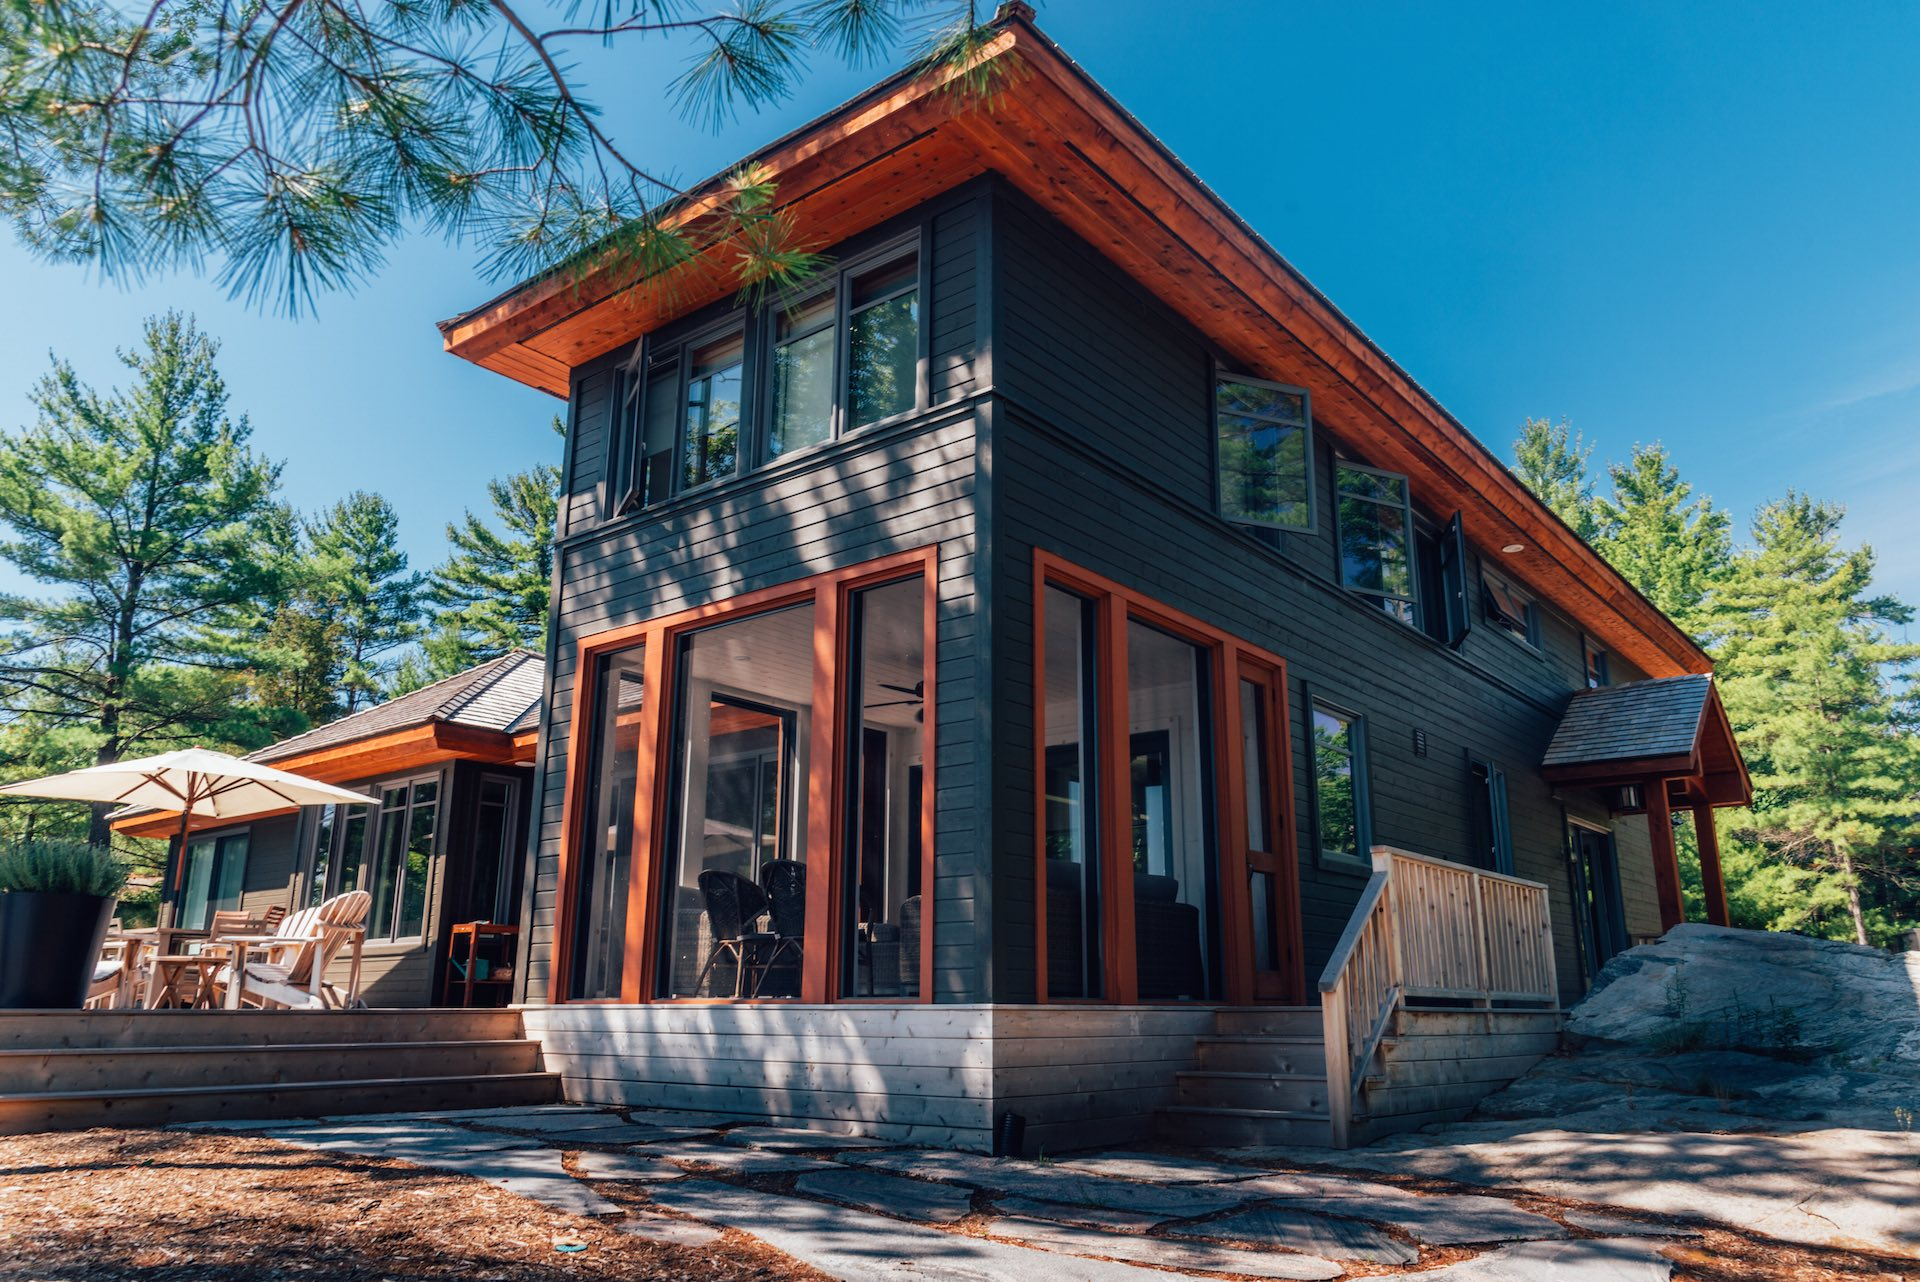 Ostaco Windows - quality windows and doors with high-performing modern window, traditional wood windows at Designer Showcase by Turkstra Lumber.